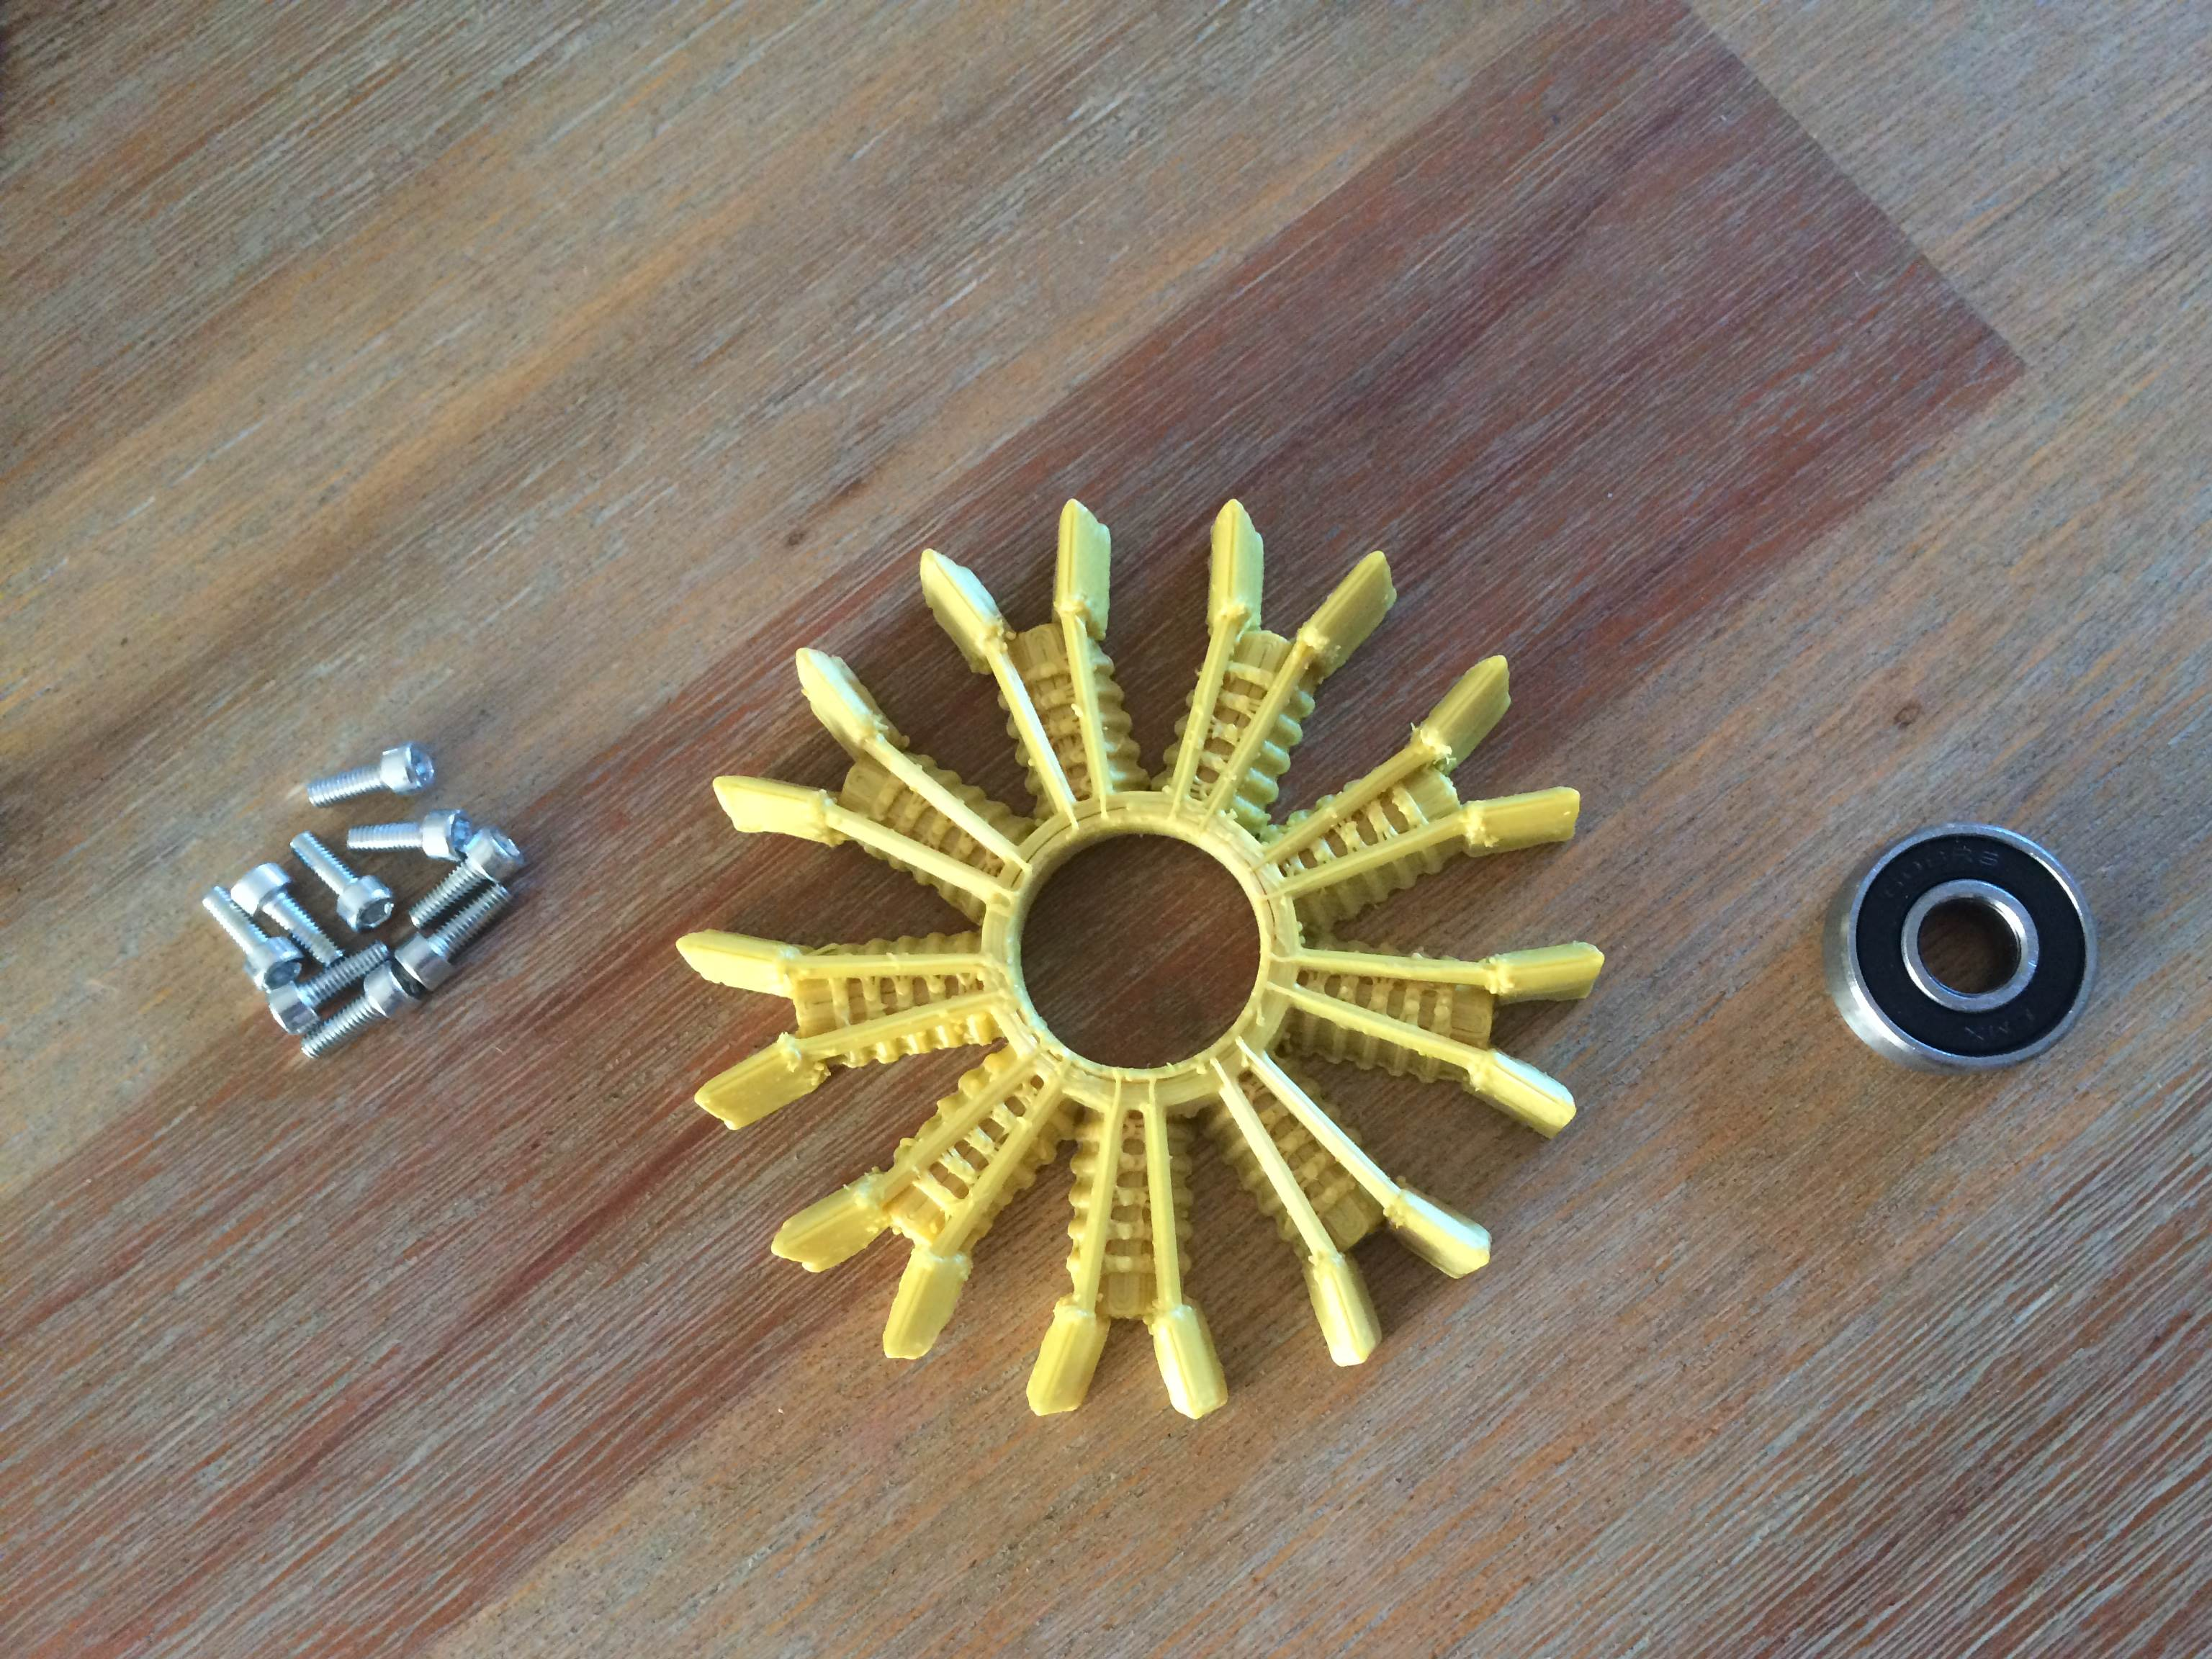 3d print your own radial engine fidget spinner the diy life